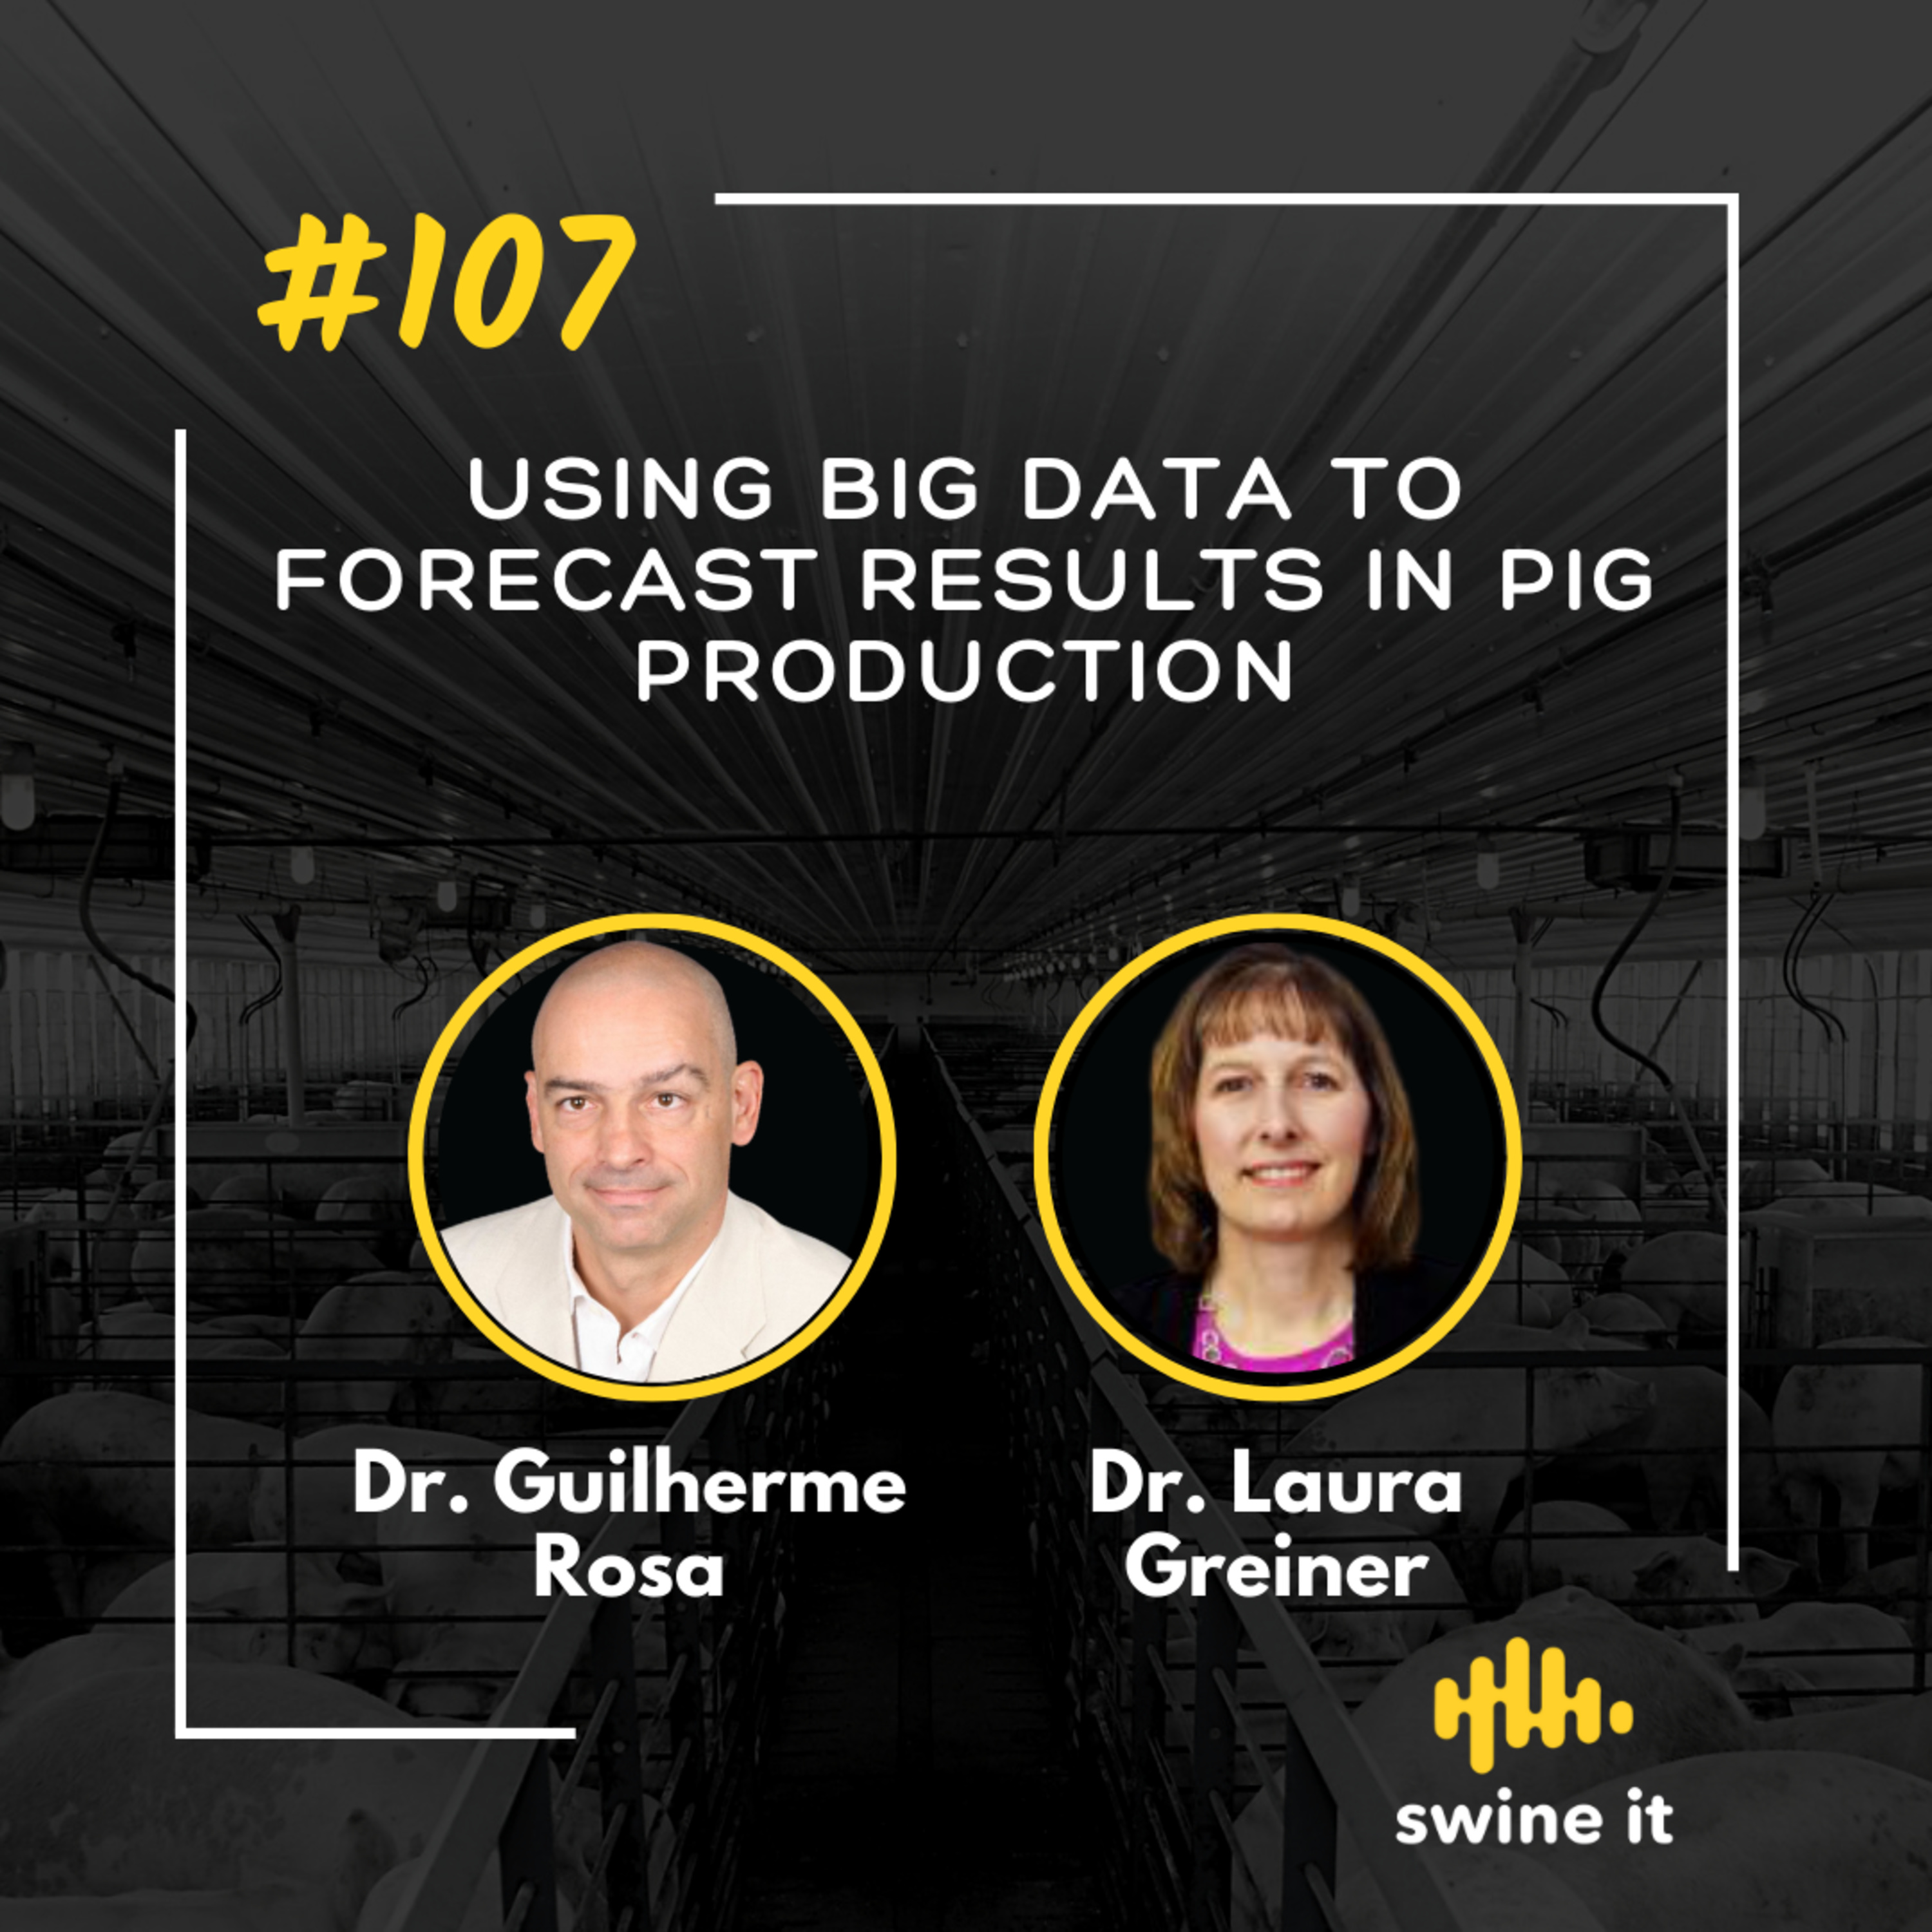 Using big data to forecast results in pig production - Dr. Guilherme Rosa